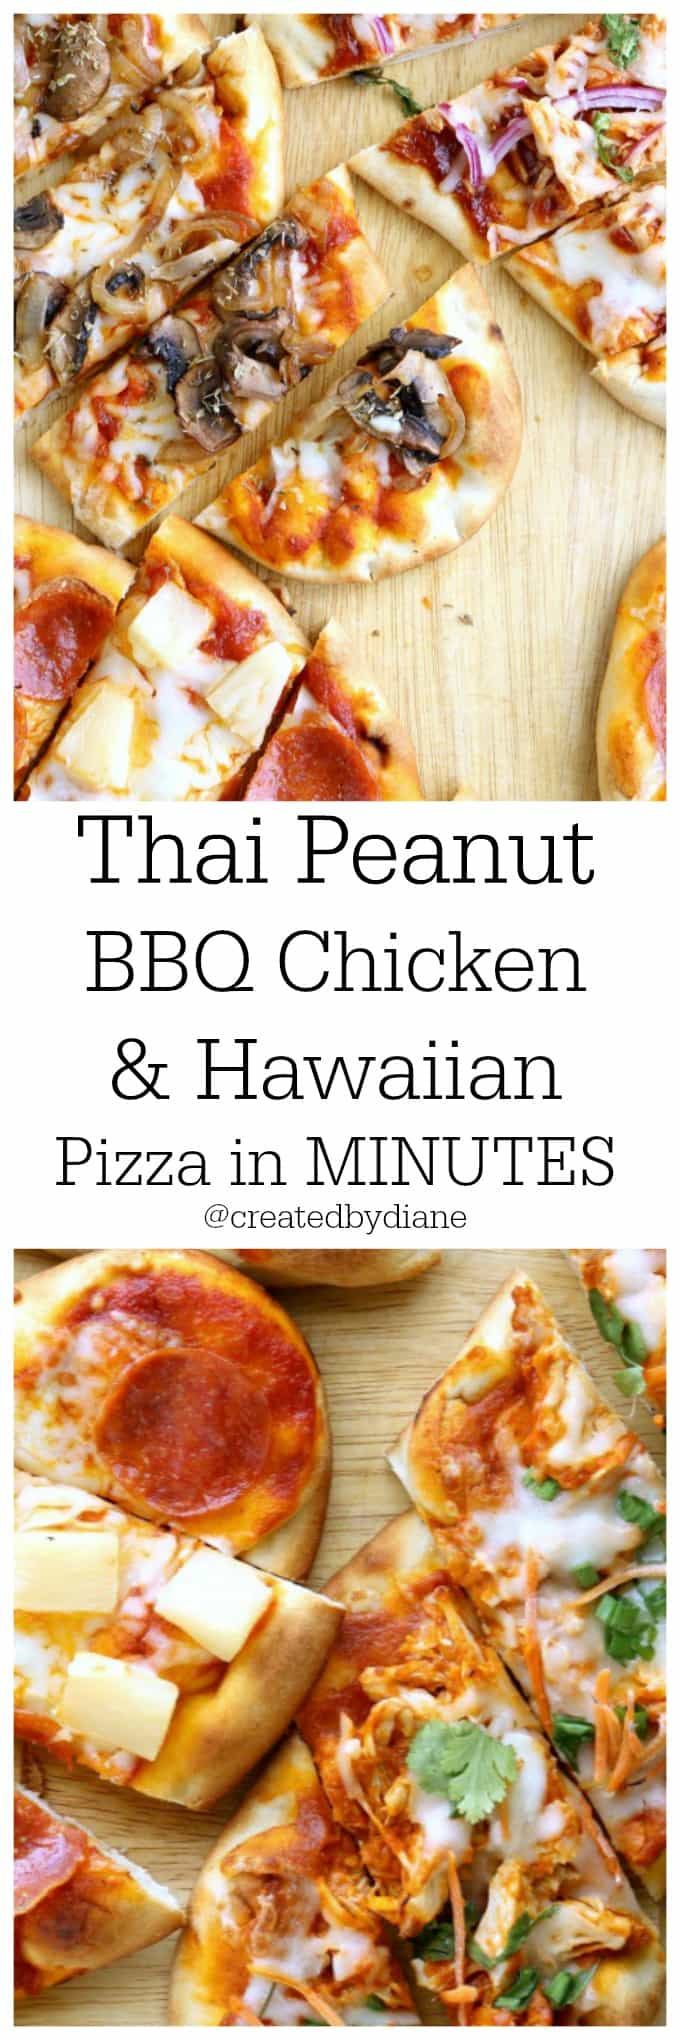 Thai peanut bbq chicken and Hawaiian Pizza in minutes @createdbydiane